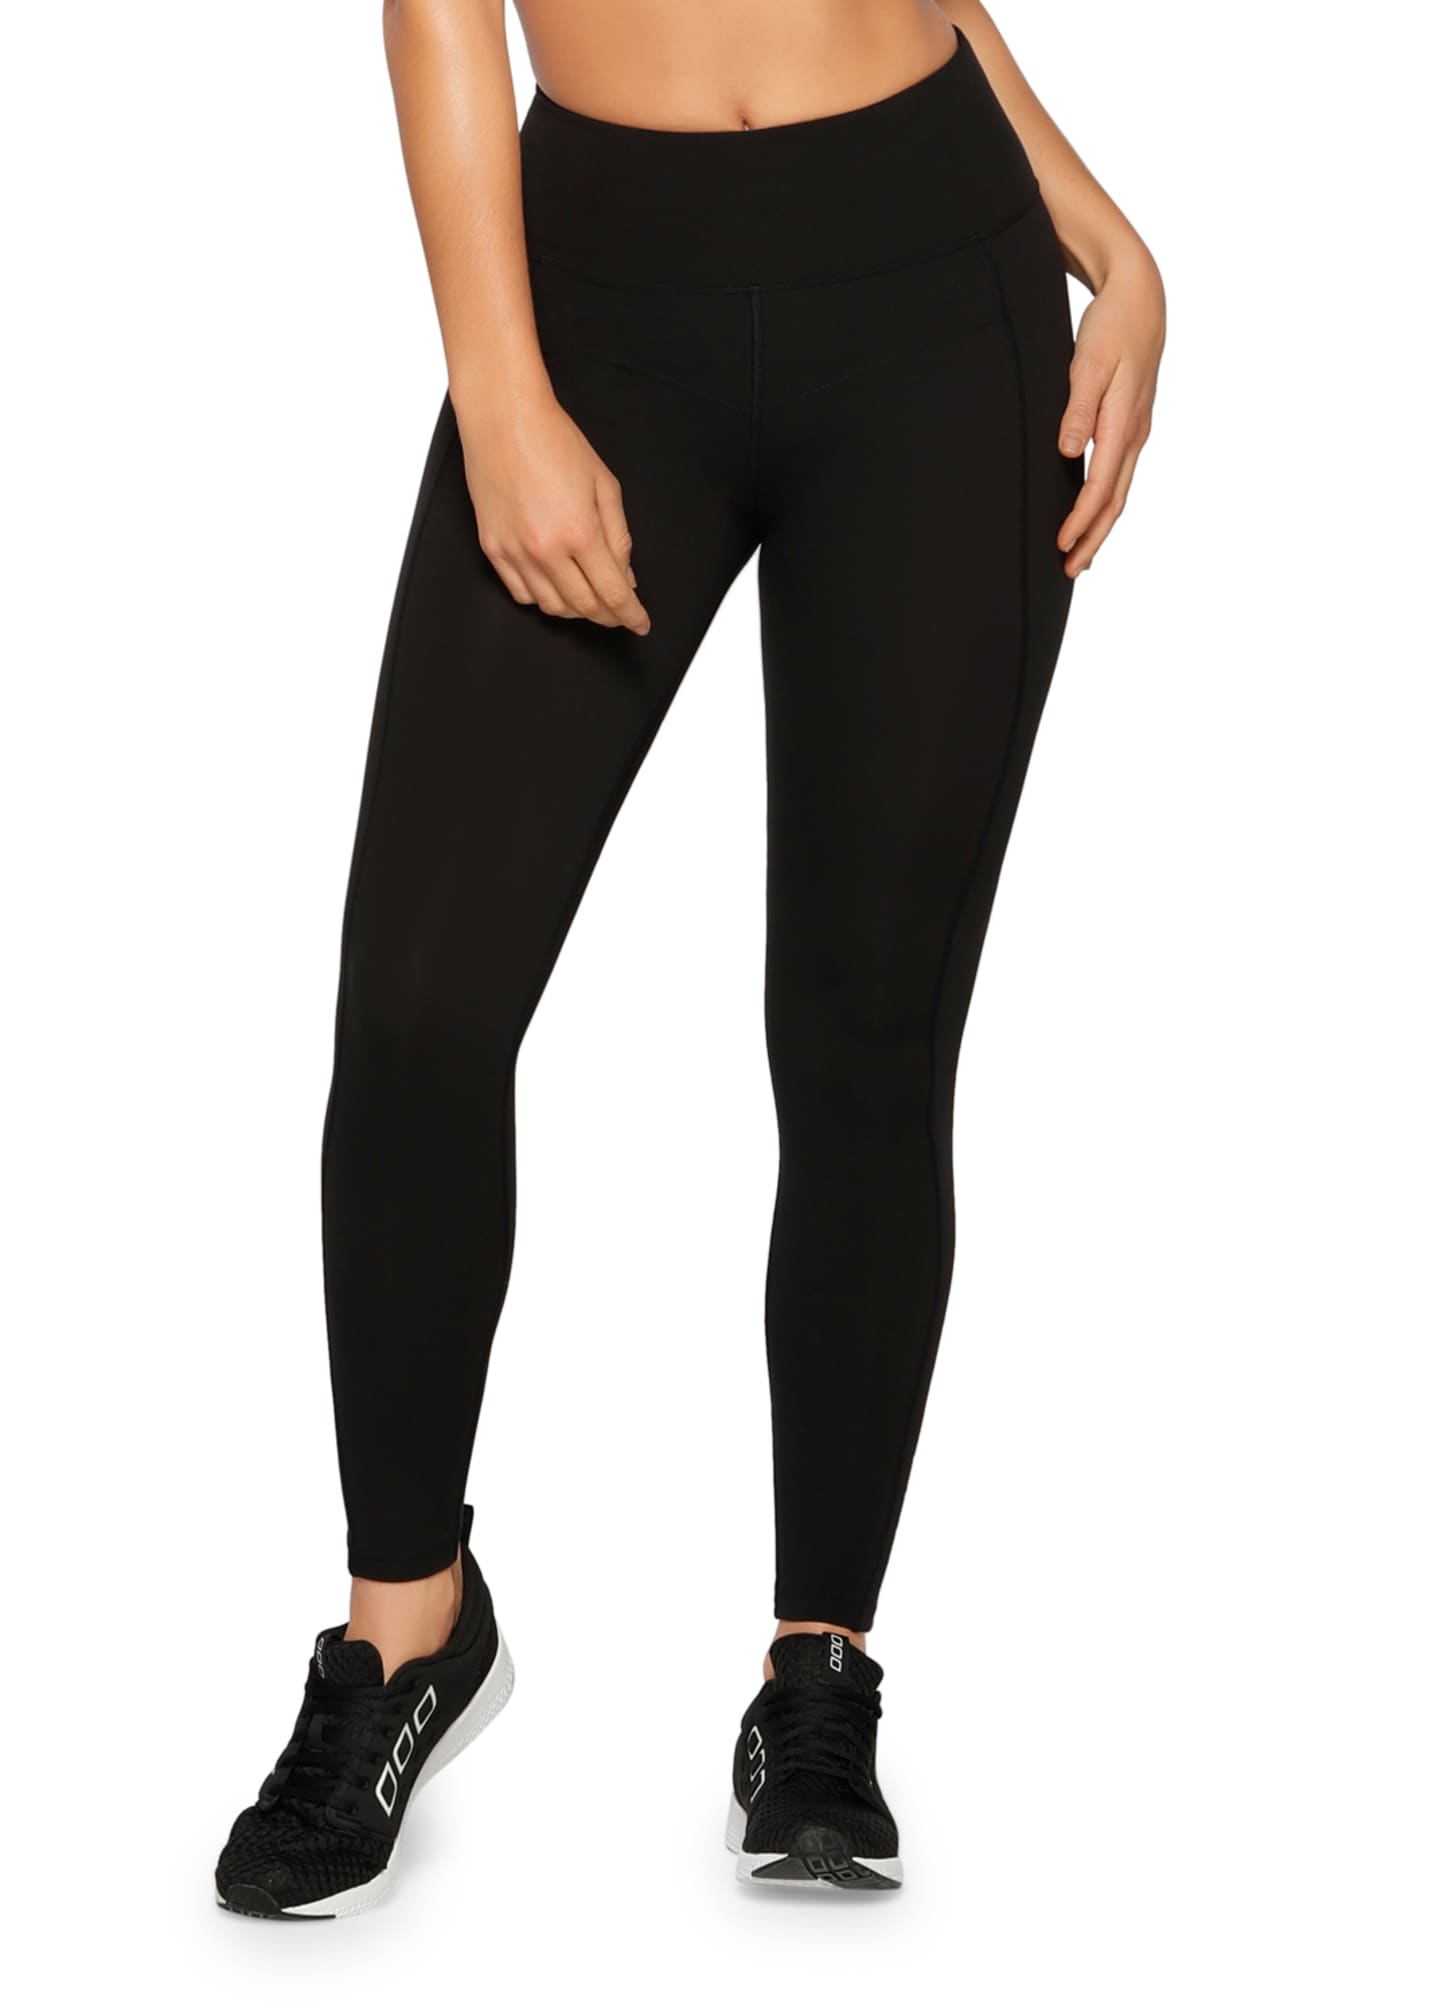 Lorna Jane Ultimate Support Full-Length Performance Tights